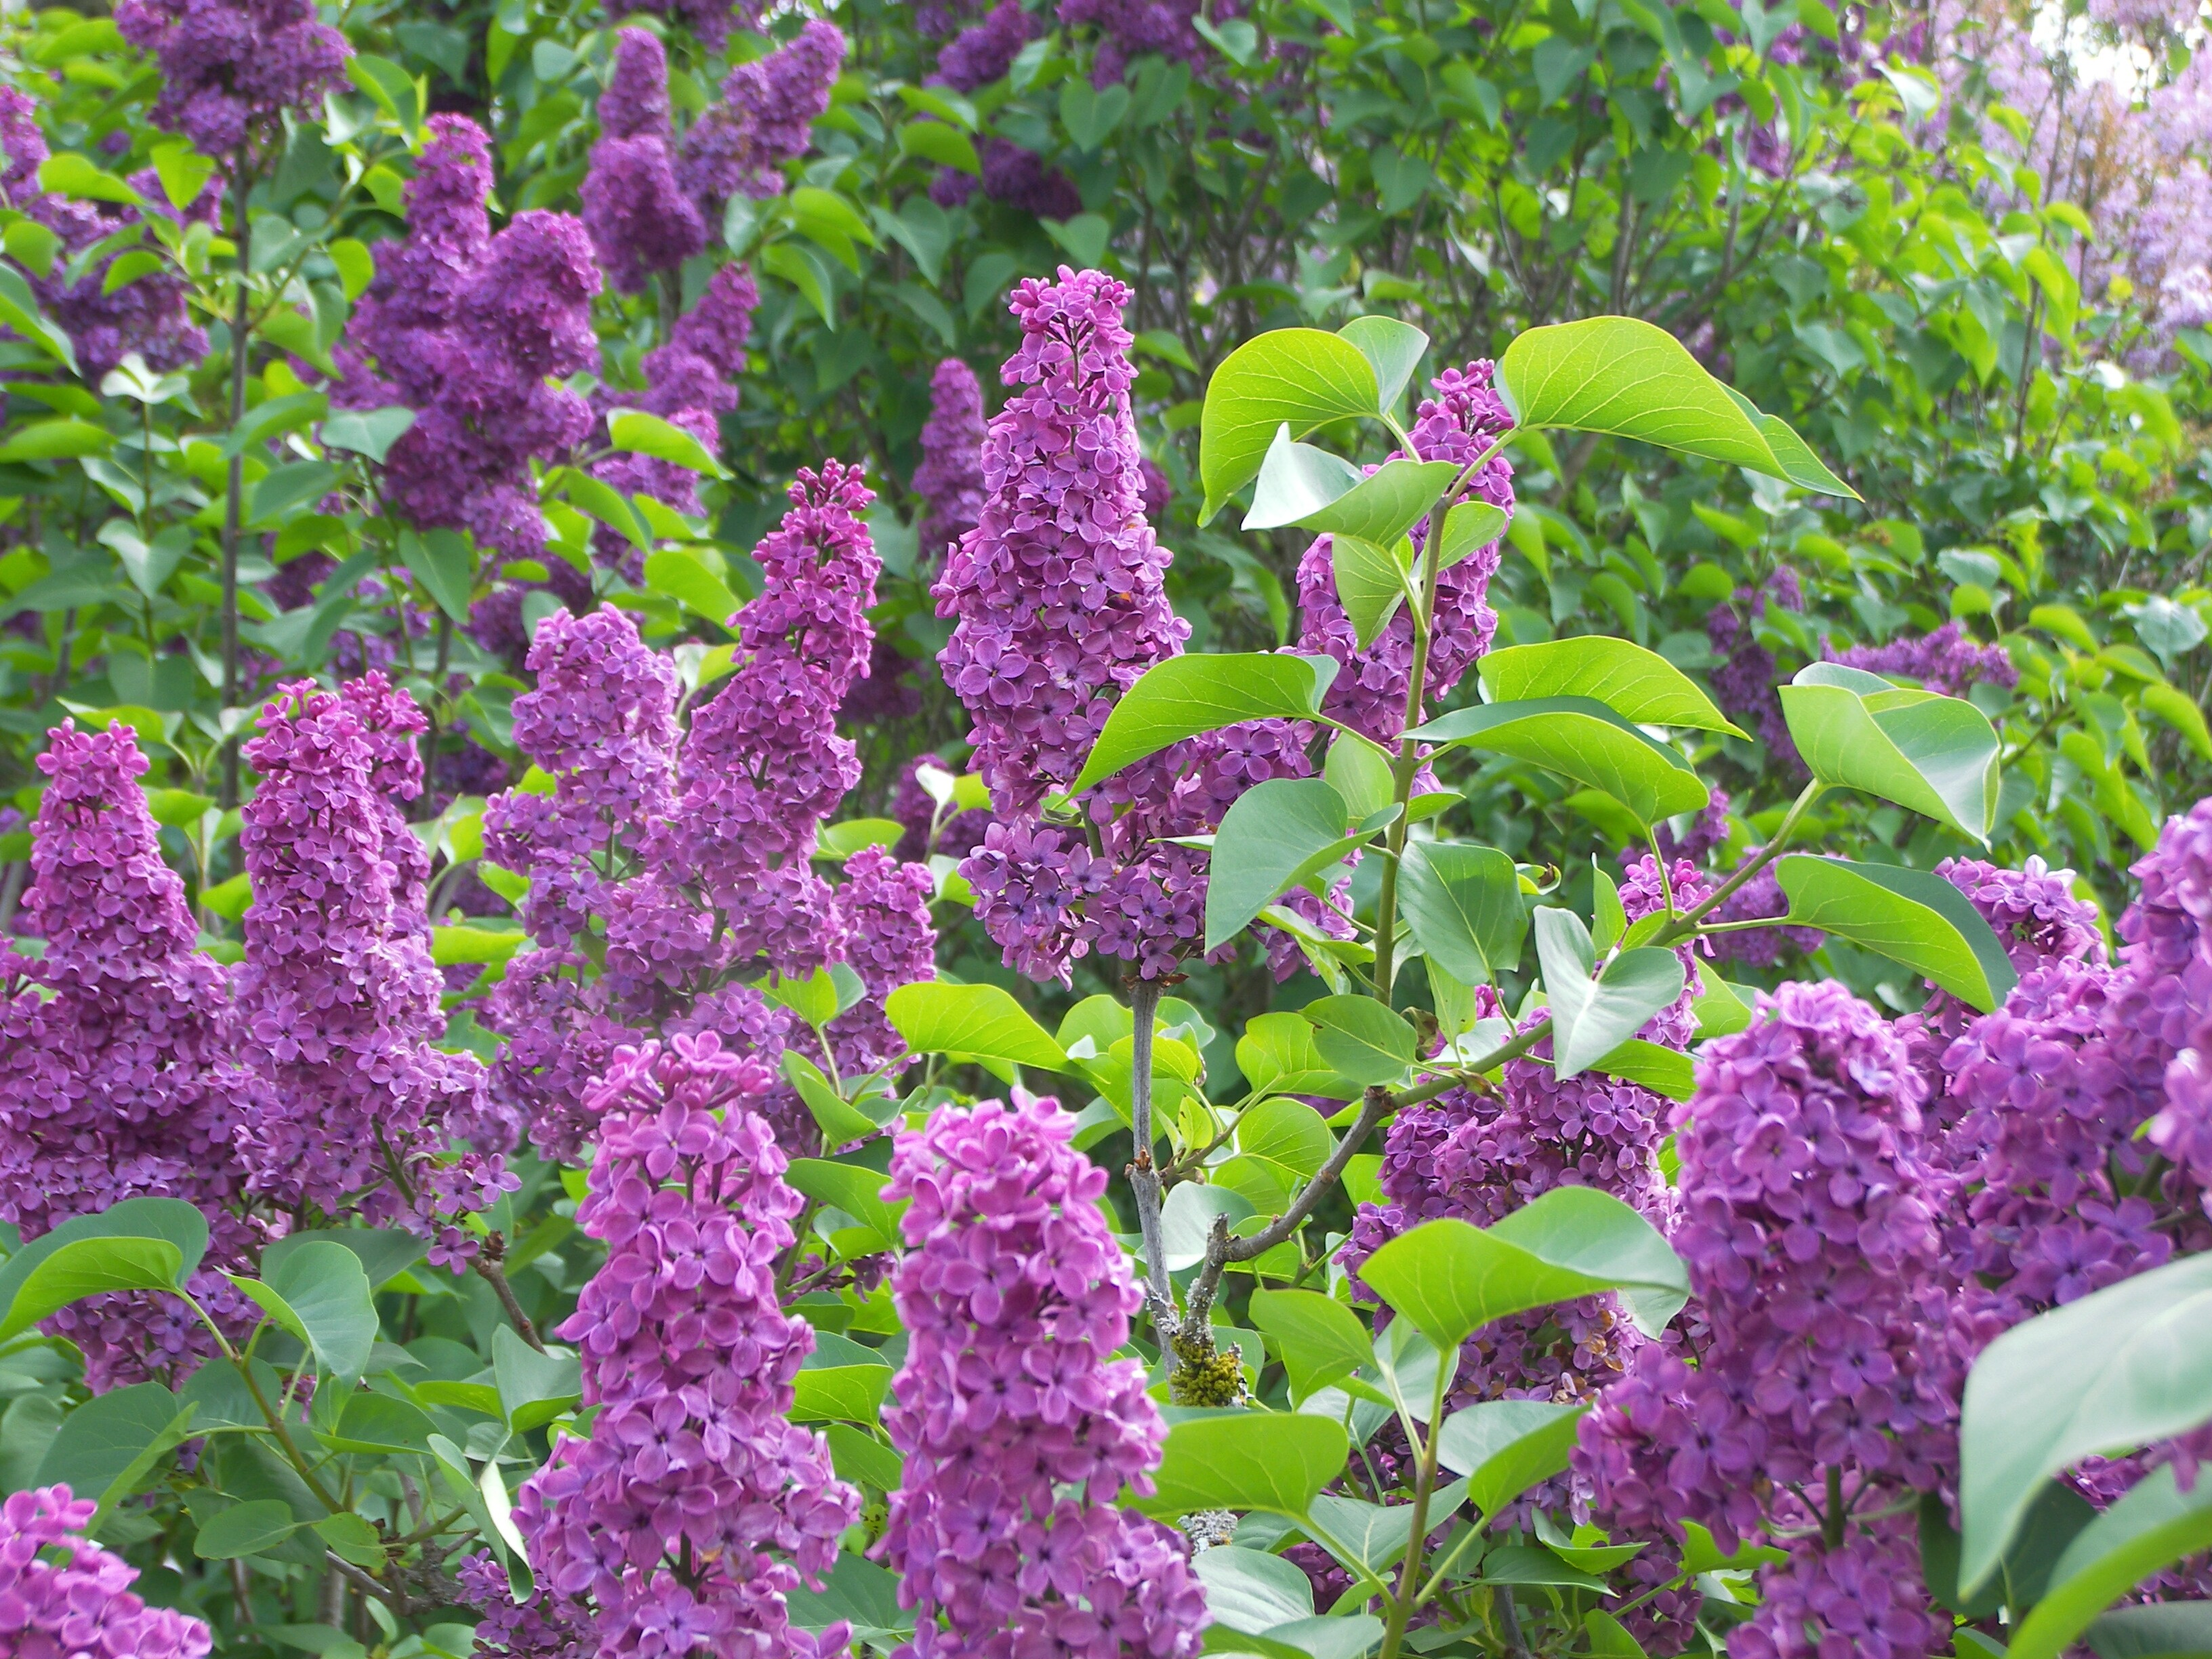 WHITMANu0027S TRINITY OF REMEMBRANCE WHEN LILACS LAST IN THE DOOR-YARD BLOOMu0027D : door yard - pezcame.com